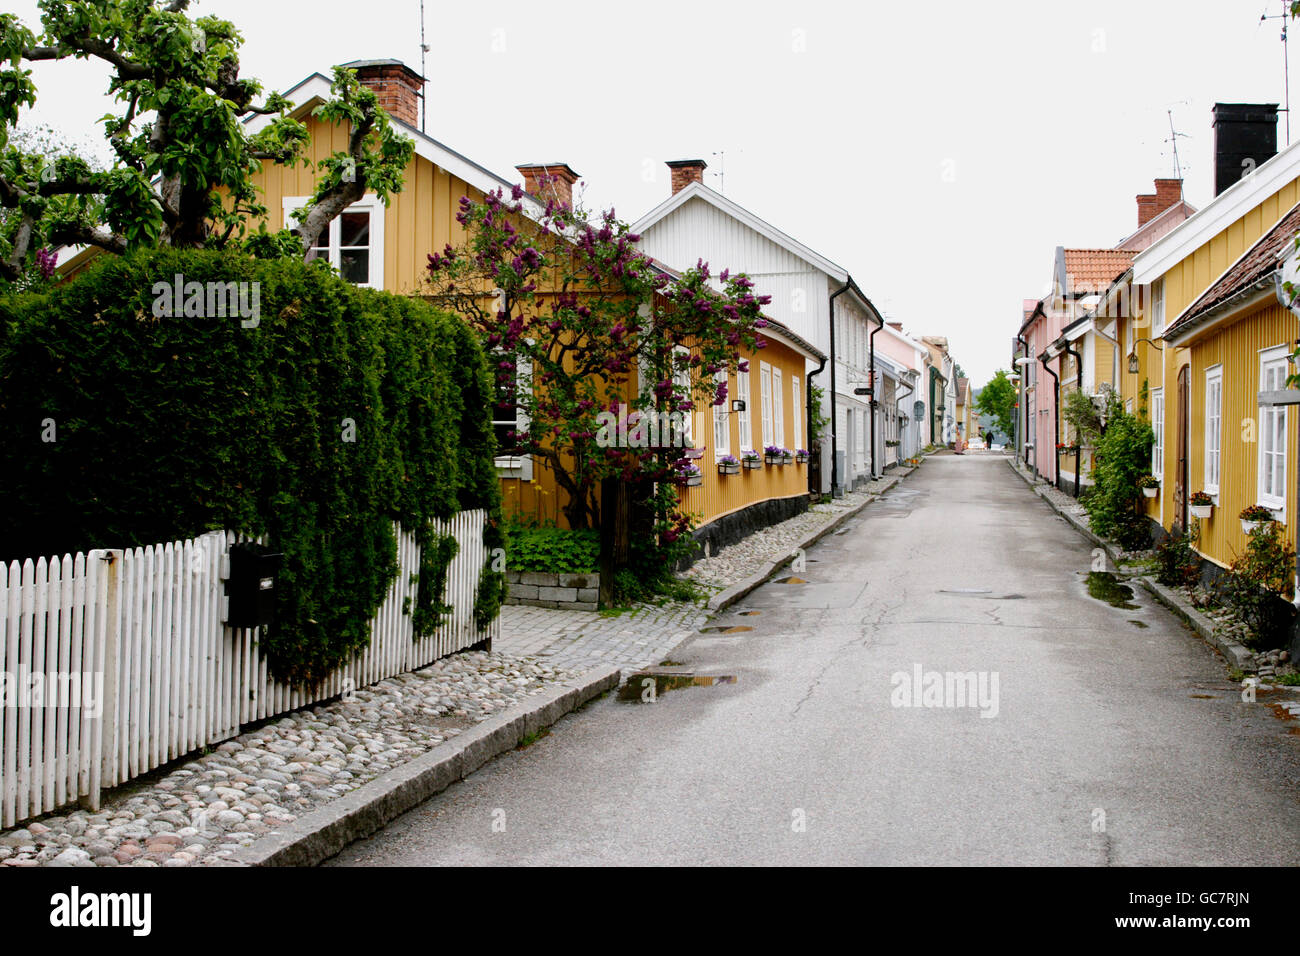 Street lined with wooden houses - Stock Image